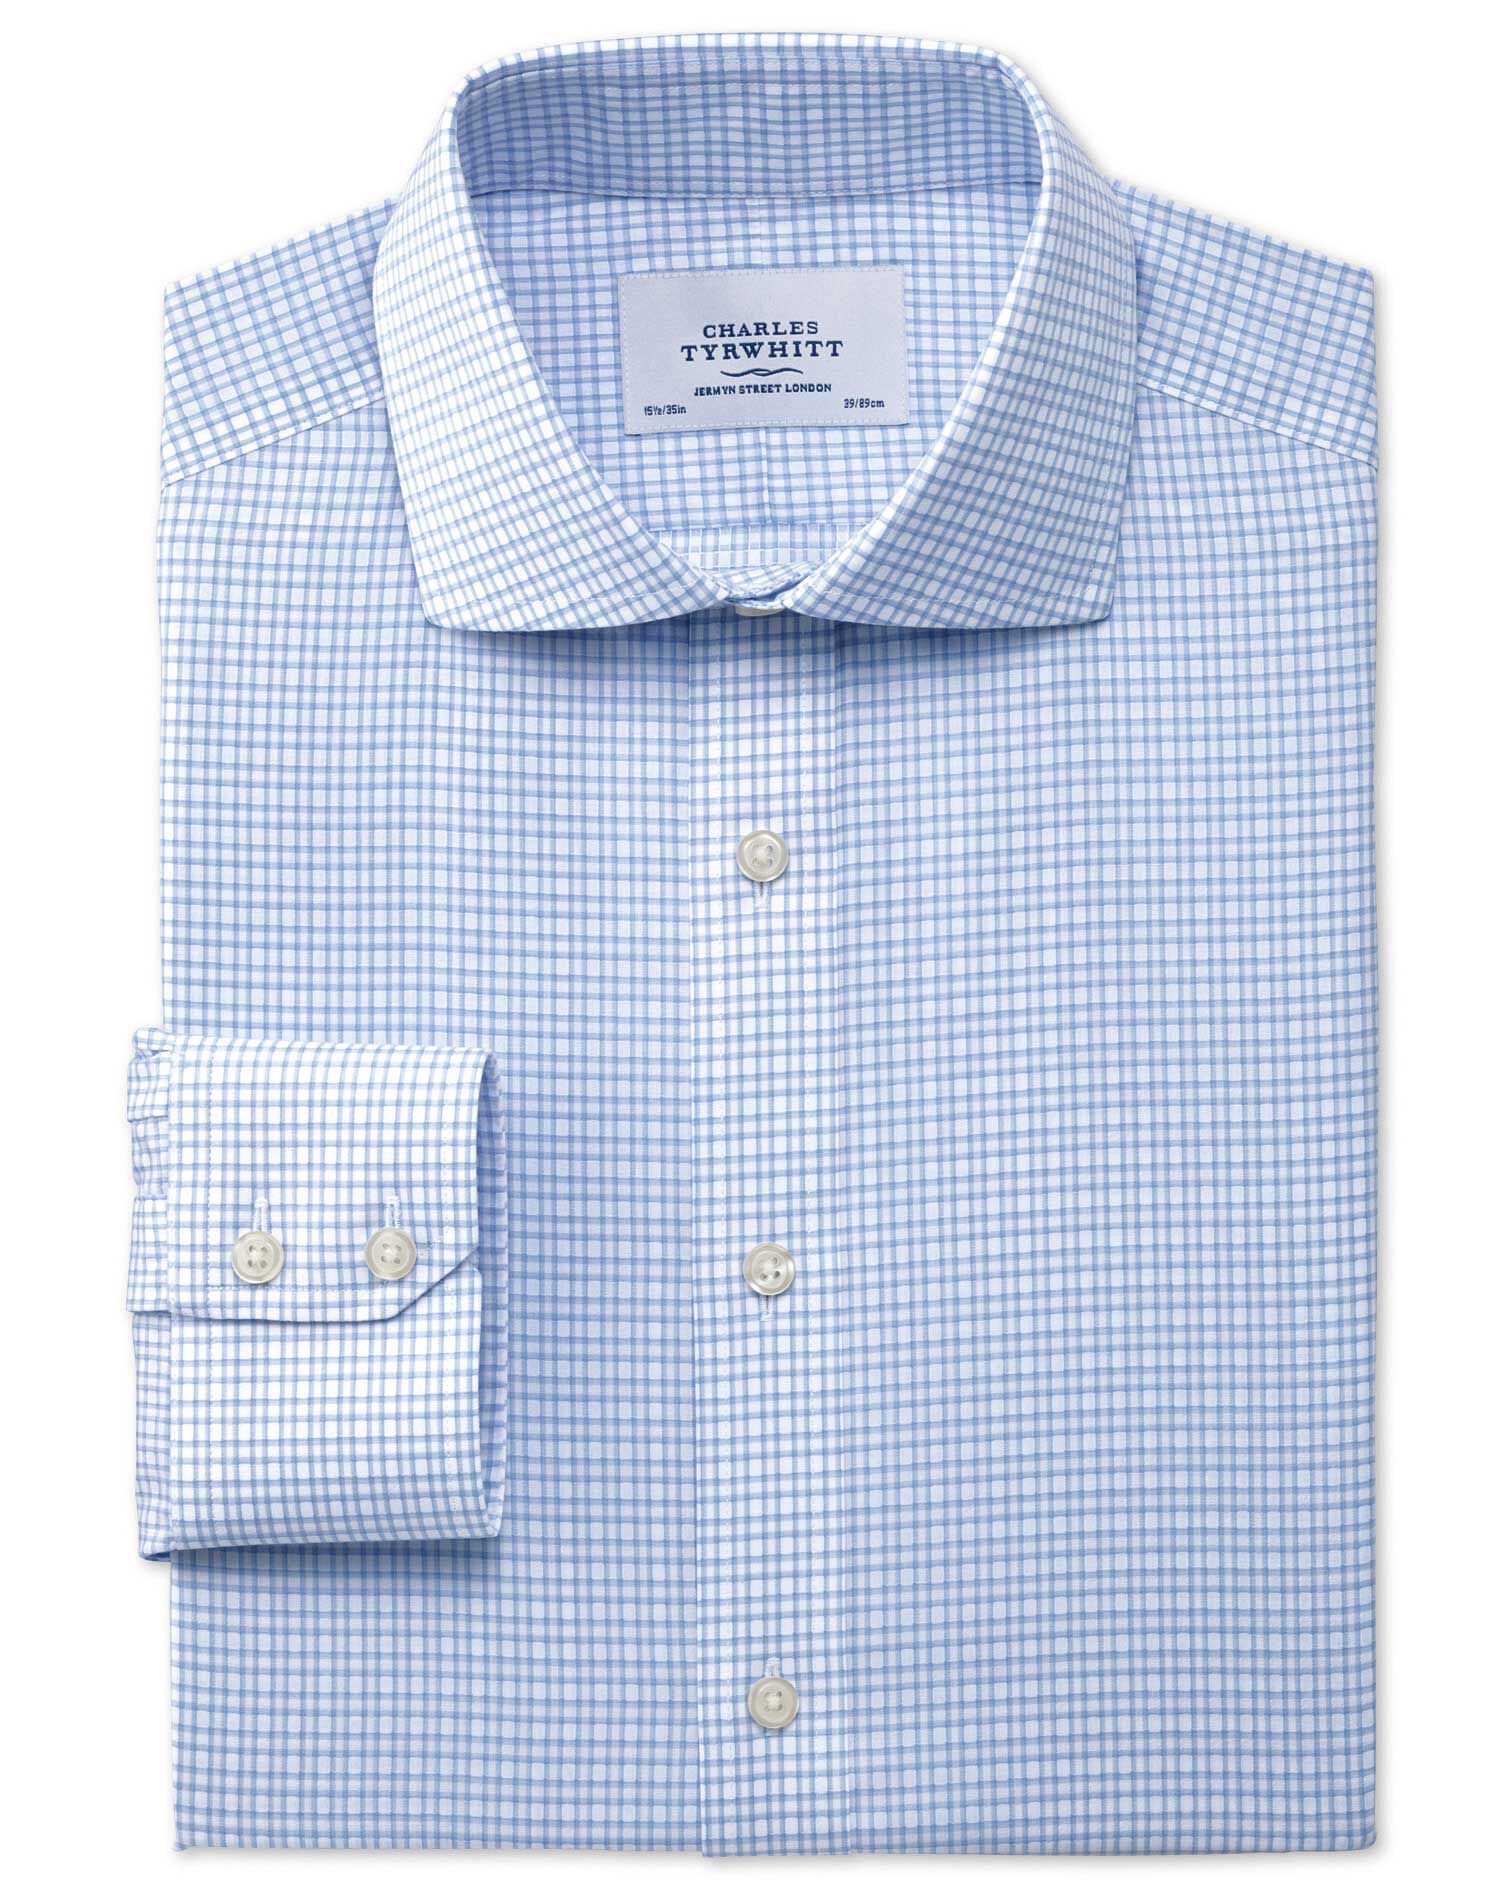 Slim Fit Cutaway Collar Non-Iron Dobby Check Sky Blue Cotton Formal Shirt Single Cuff Size 15/35 by